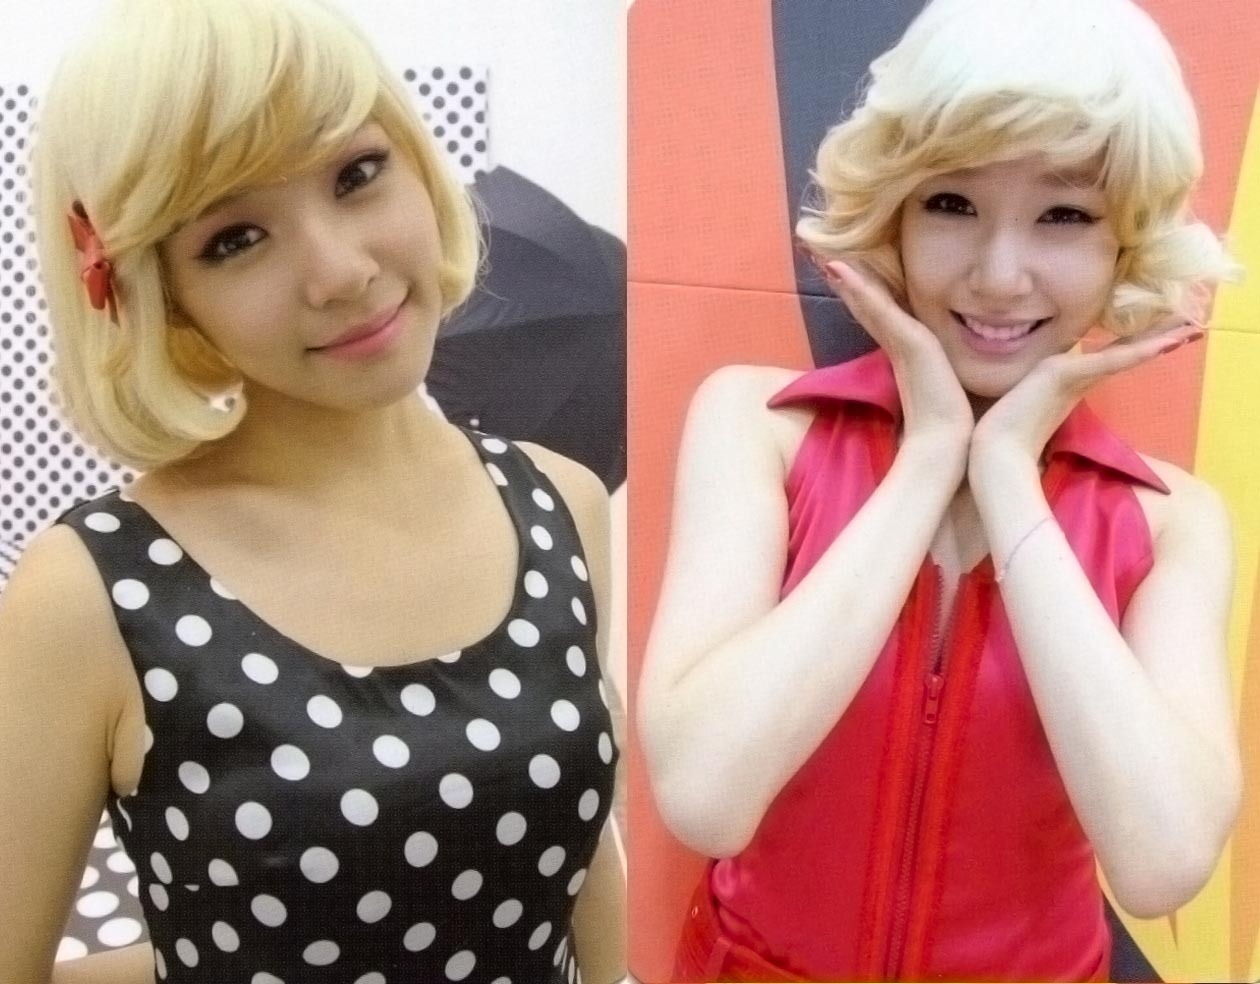 http://images4.fanpop.com/image/photos/17100000/tiffany-Hoot-girls-generation-snsd-17165782-1260-984.jpg